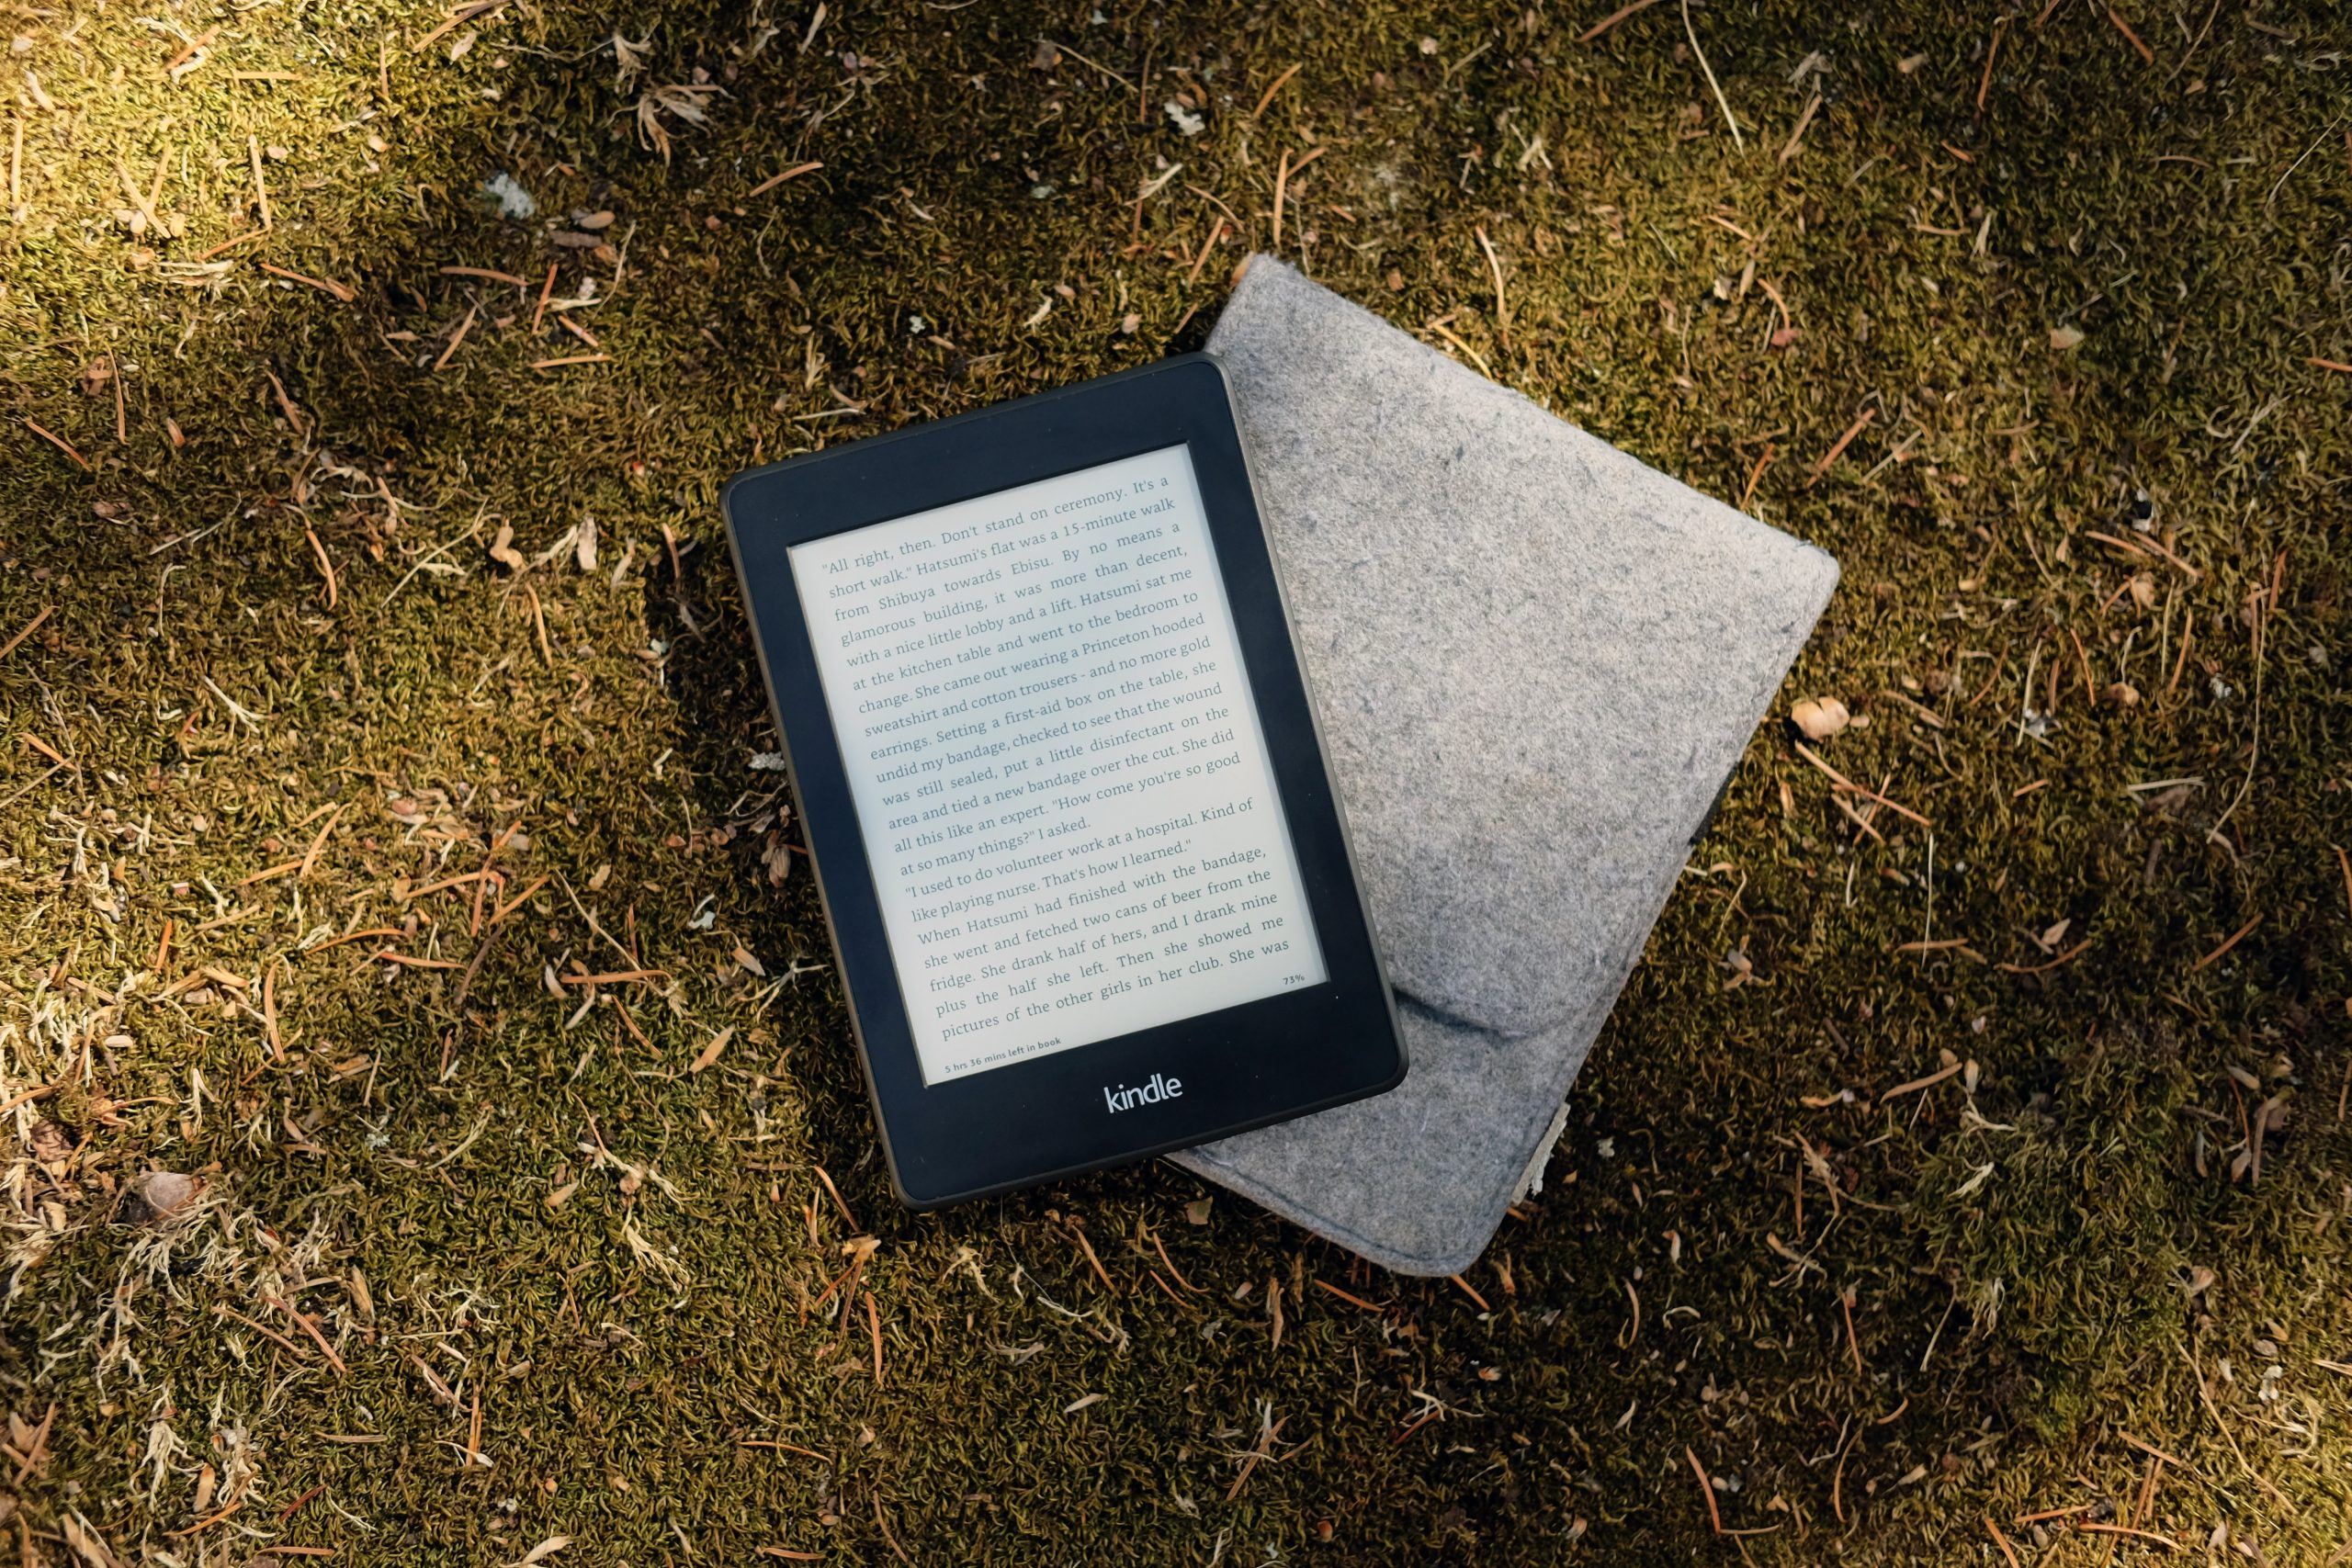 Kindle 4 Ad blocking